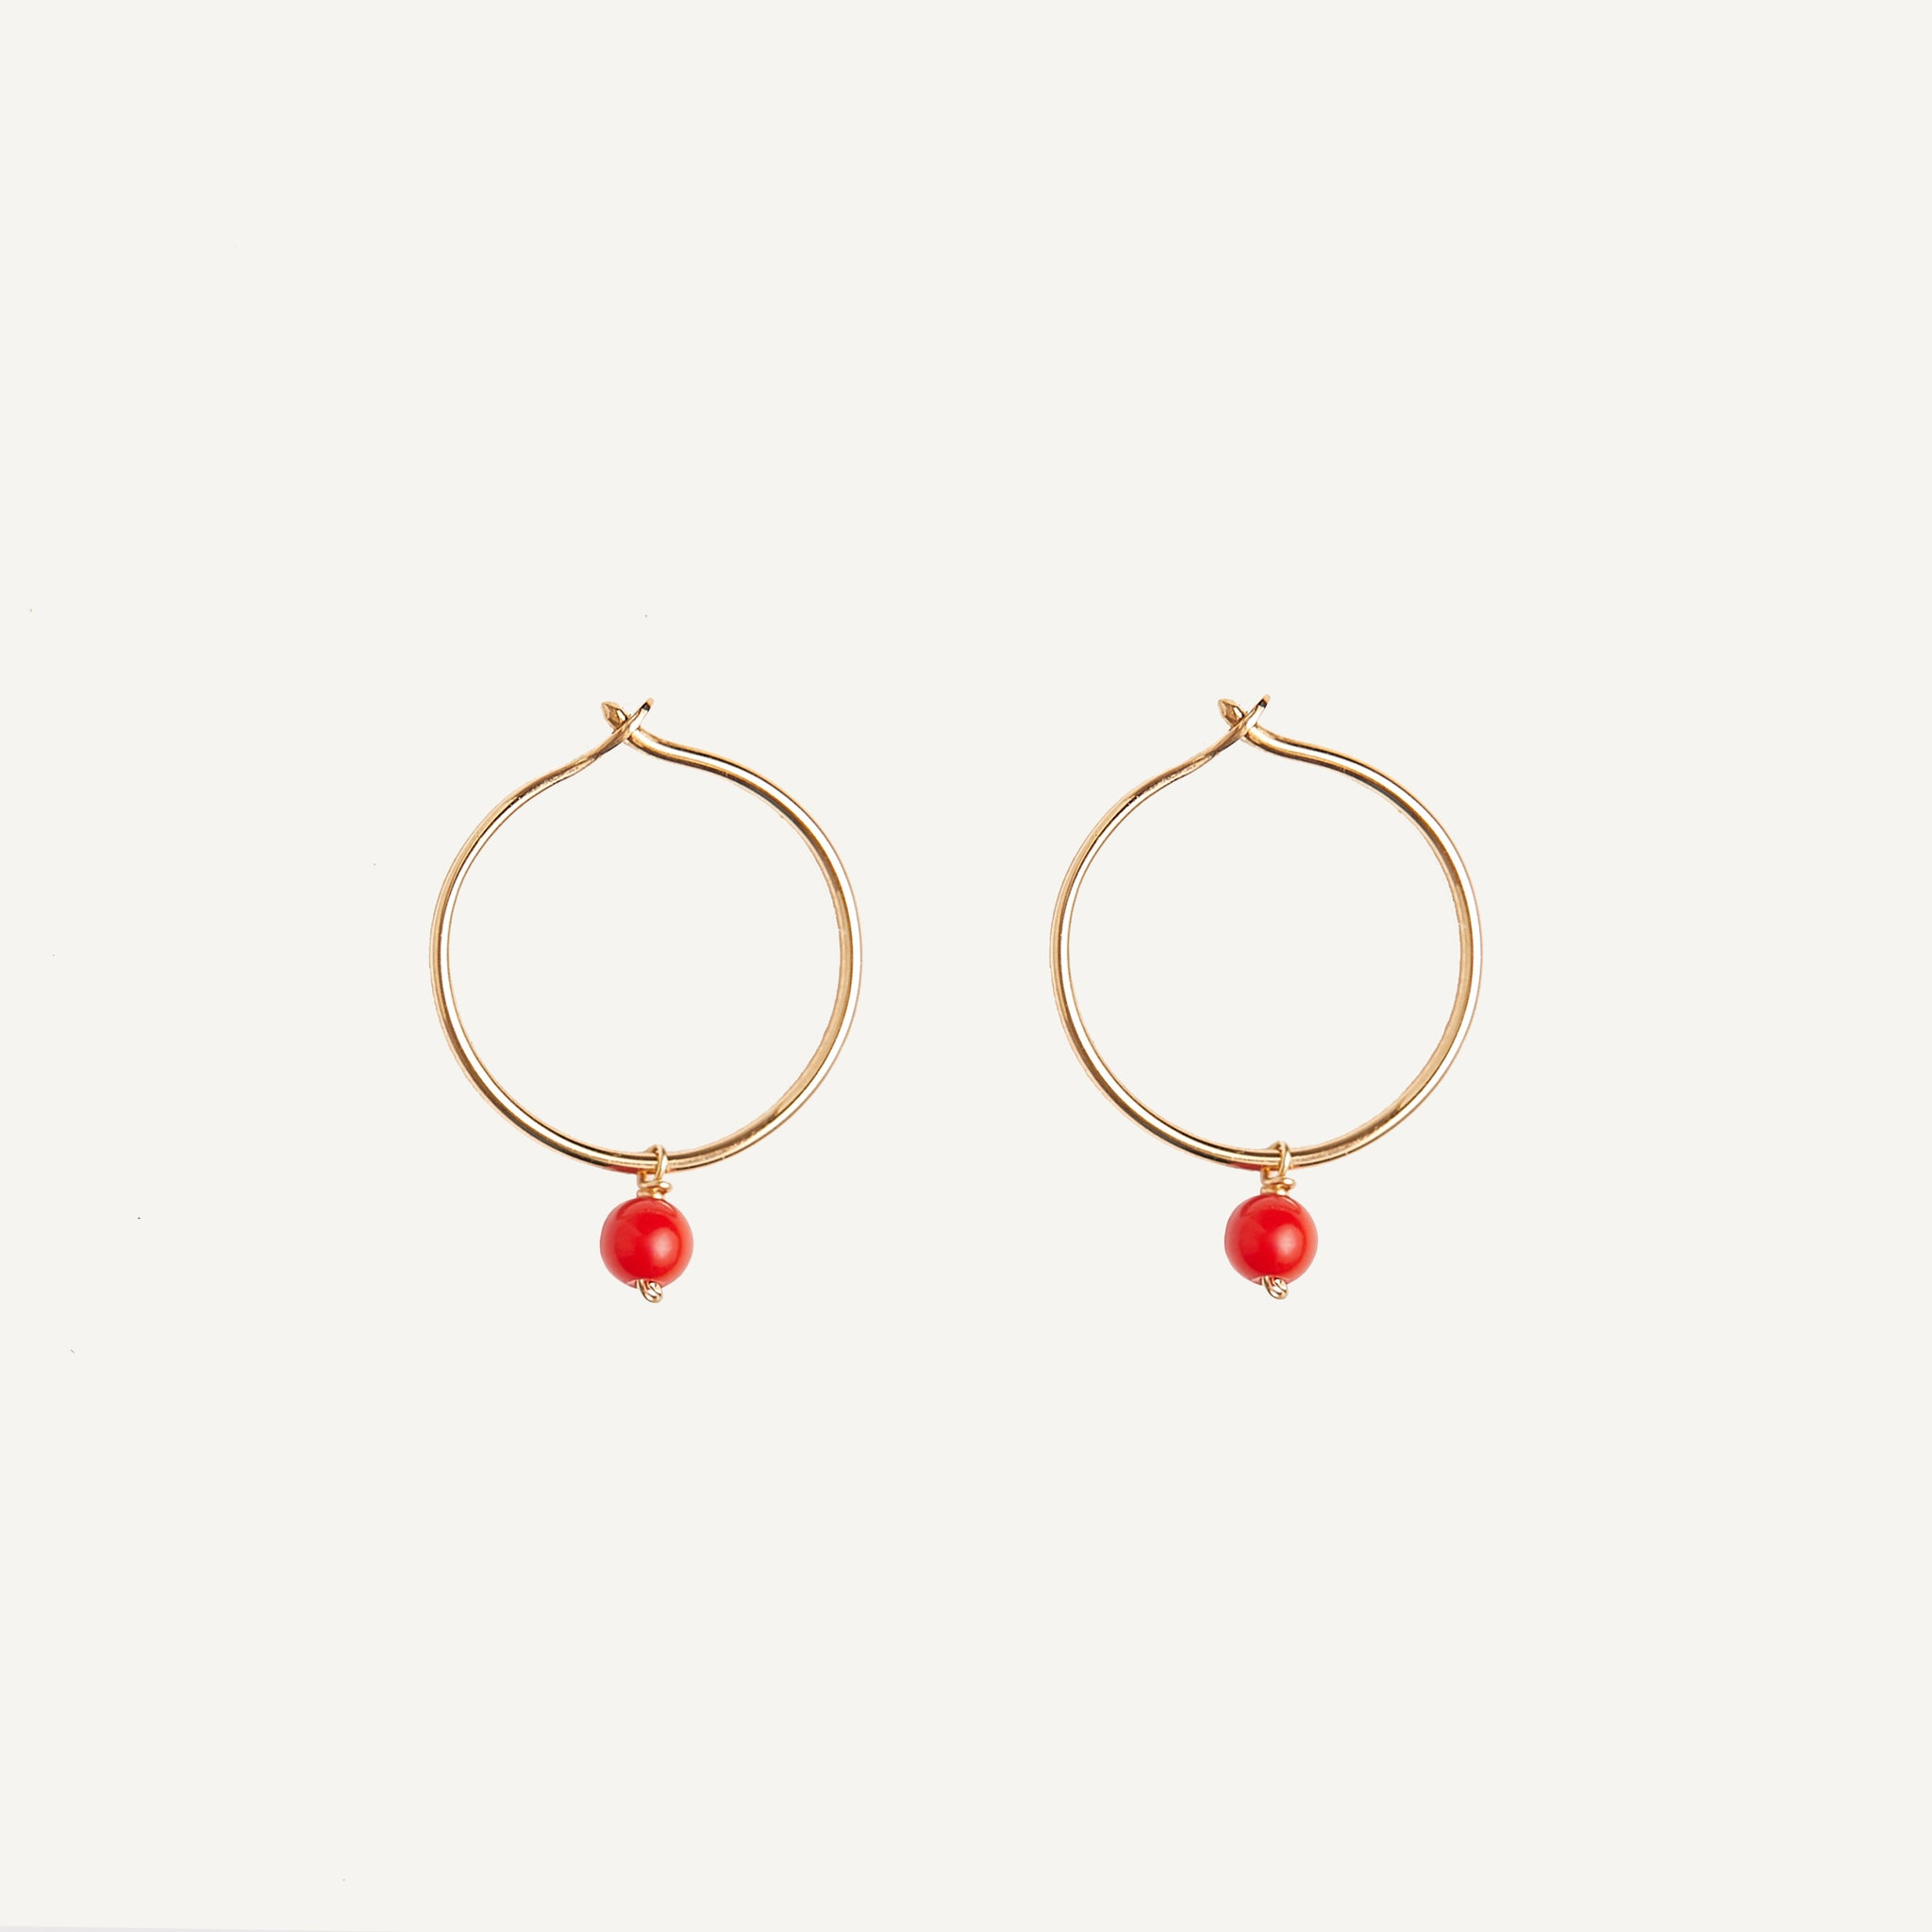 HELENA ROHNER 18K GOLD HOOPS WITH STONE BEAD